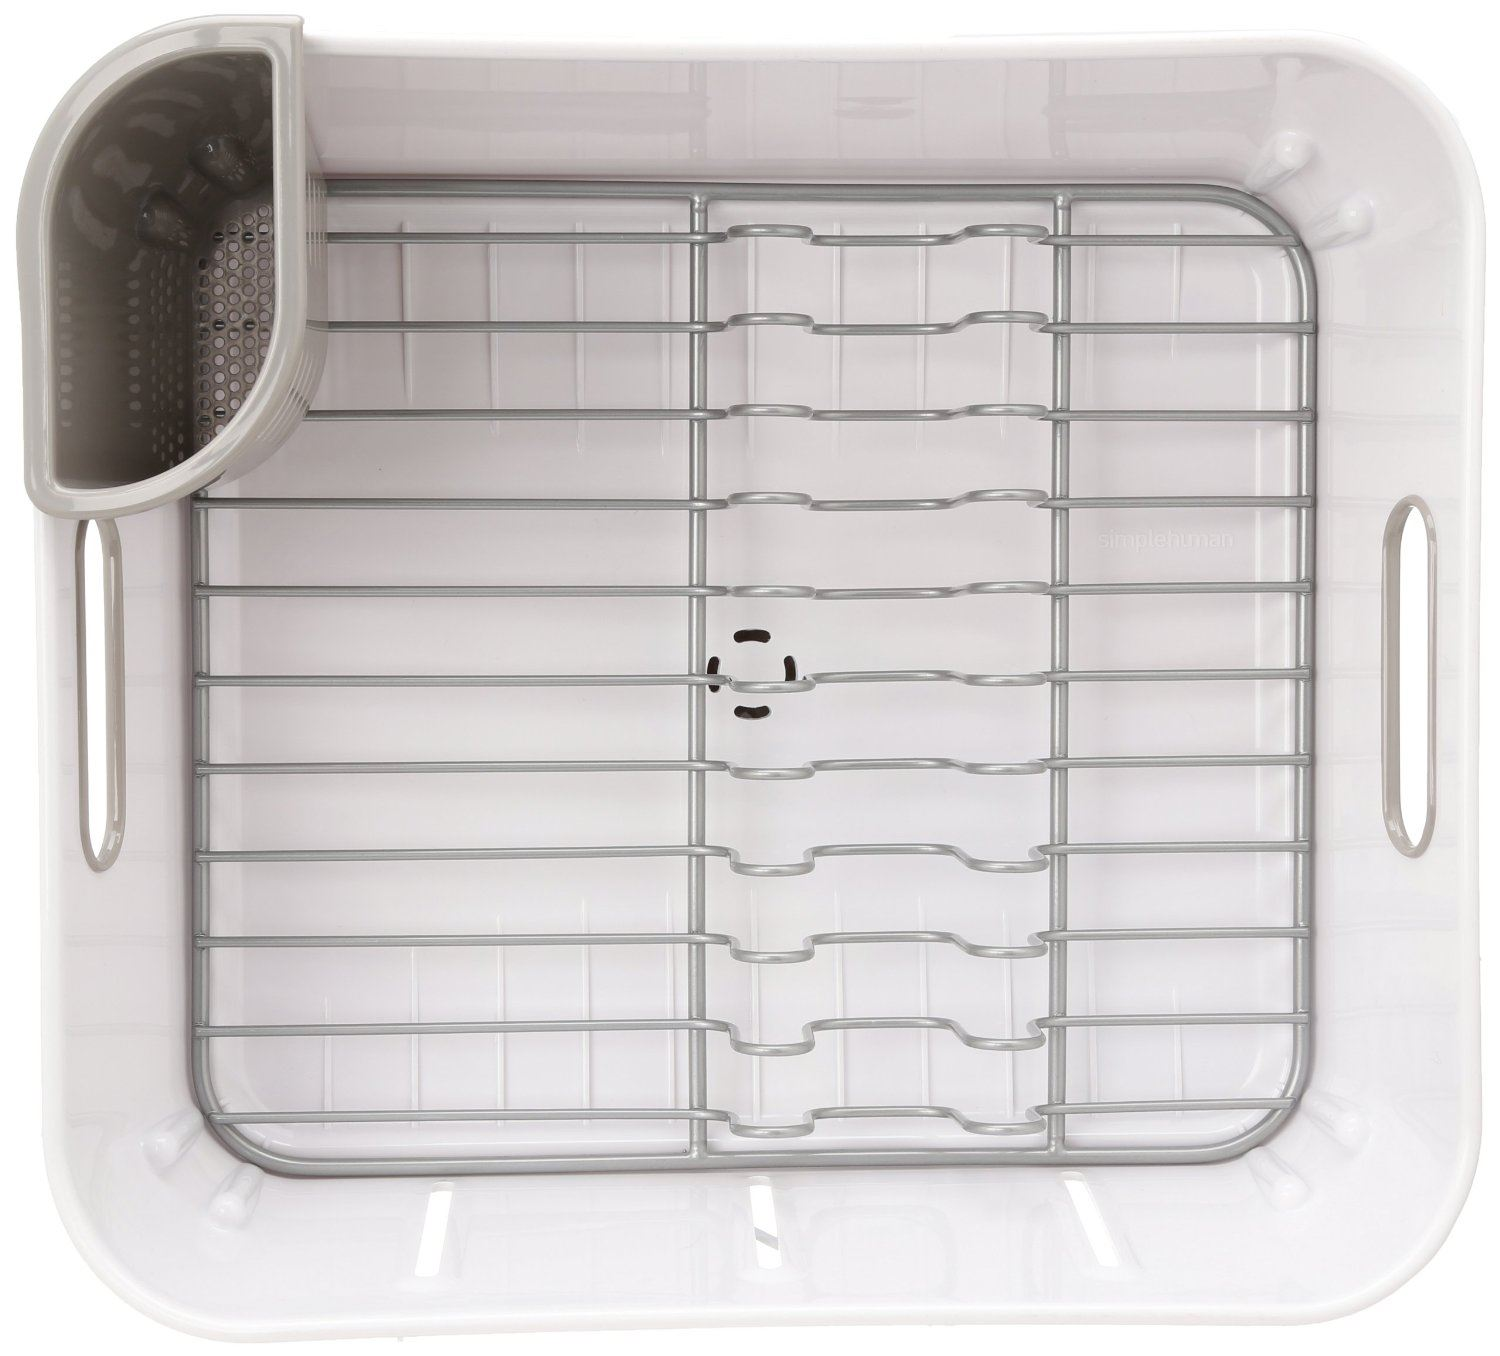 Simplehuman Compact Stainless Steel Dish Rack Sink Drainer